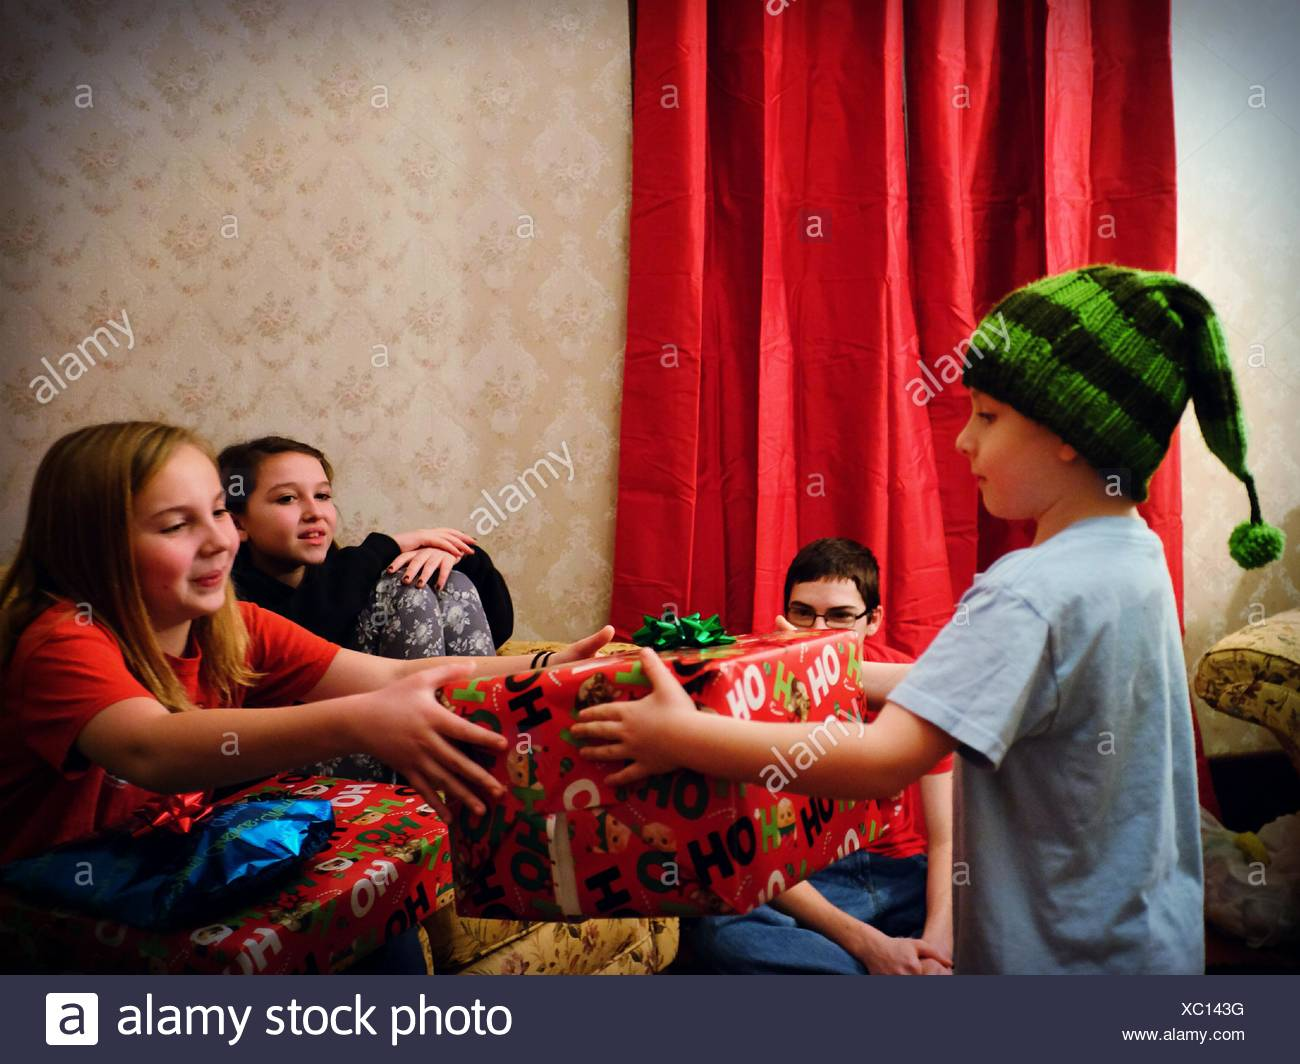 Children Giving Gifts - Stock Image